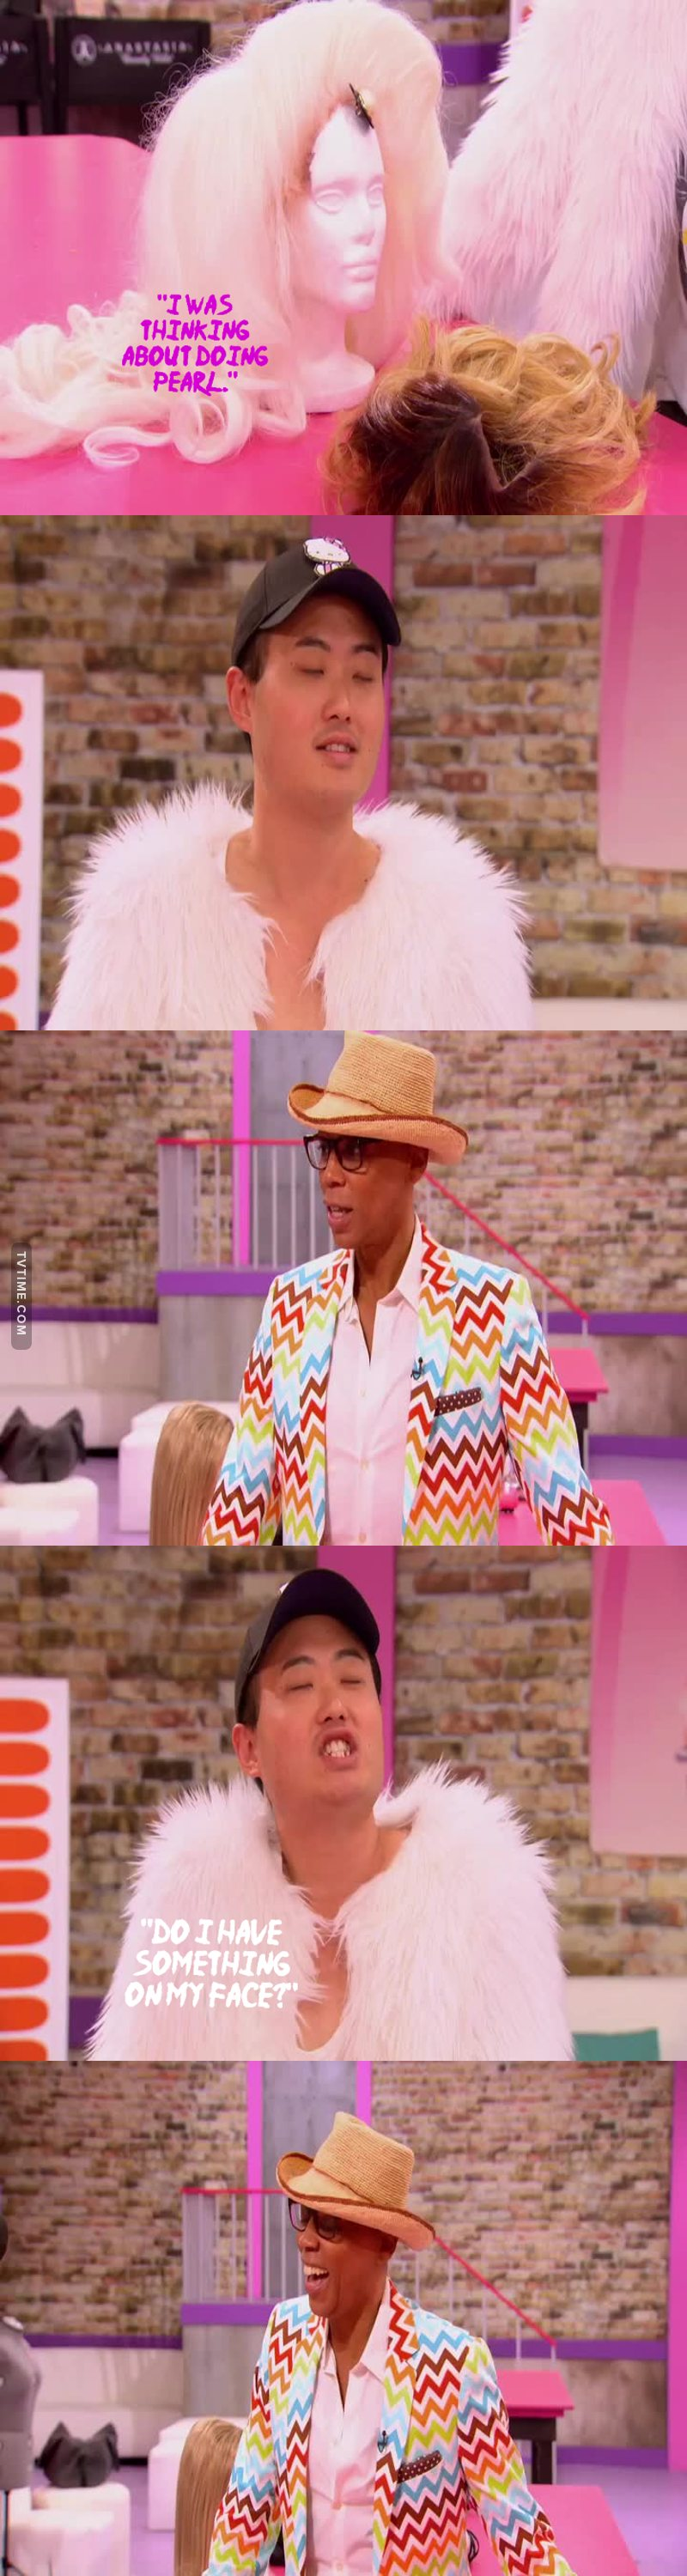 Omg, best moment this episode, I couldn't stop laughing 😂😂😂